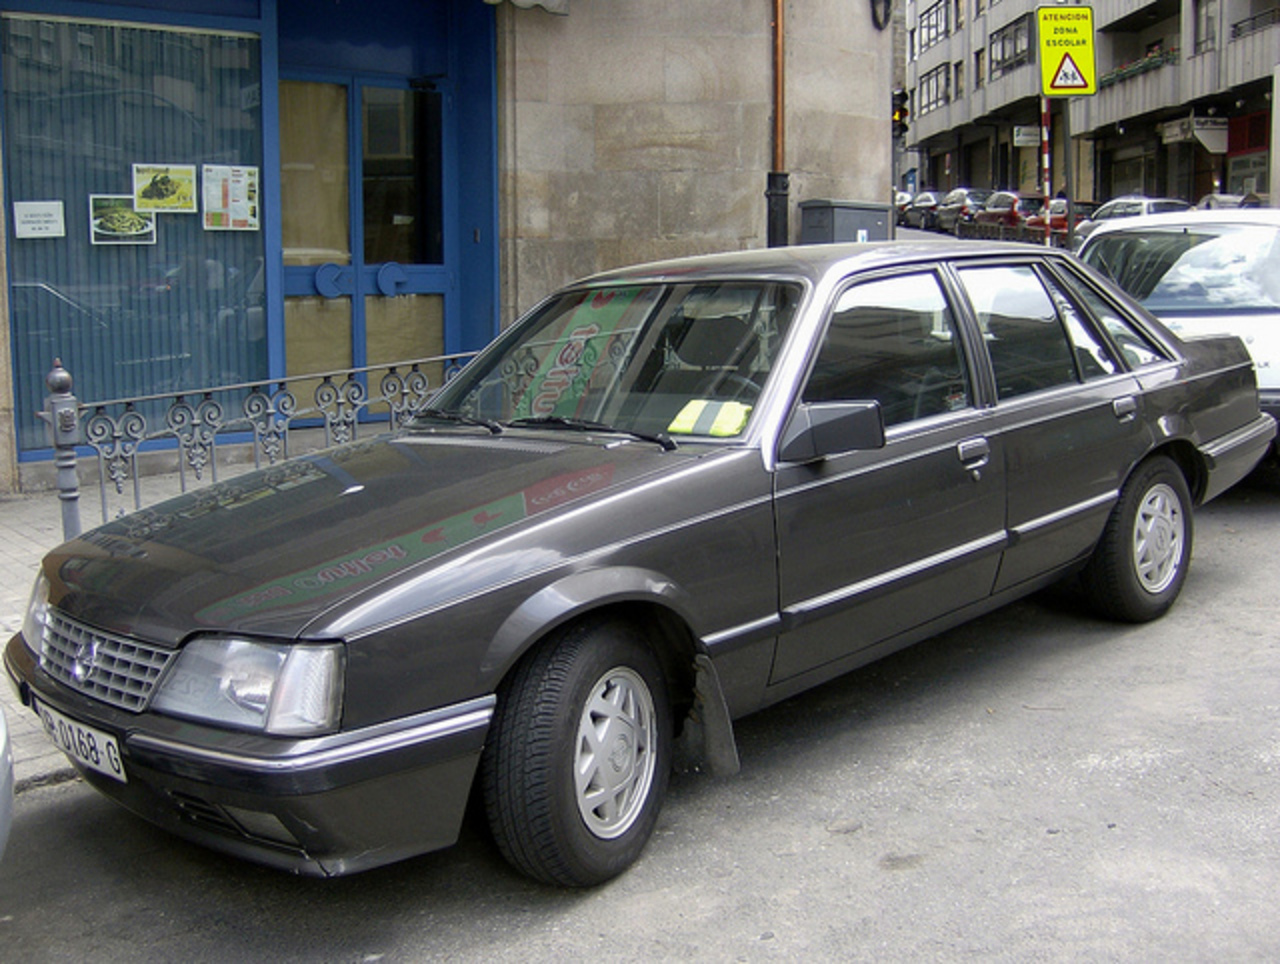 1983 Opel Senator 3.0 E | Flickr - Photo Sharing!